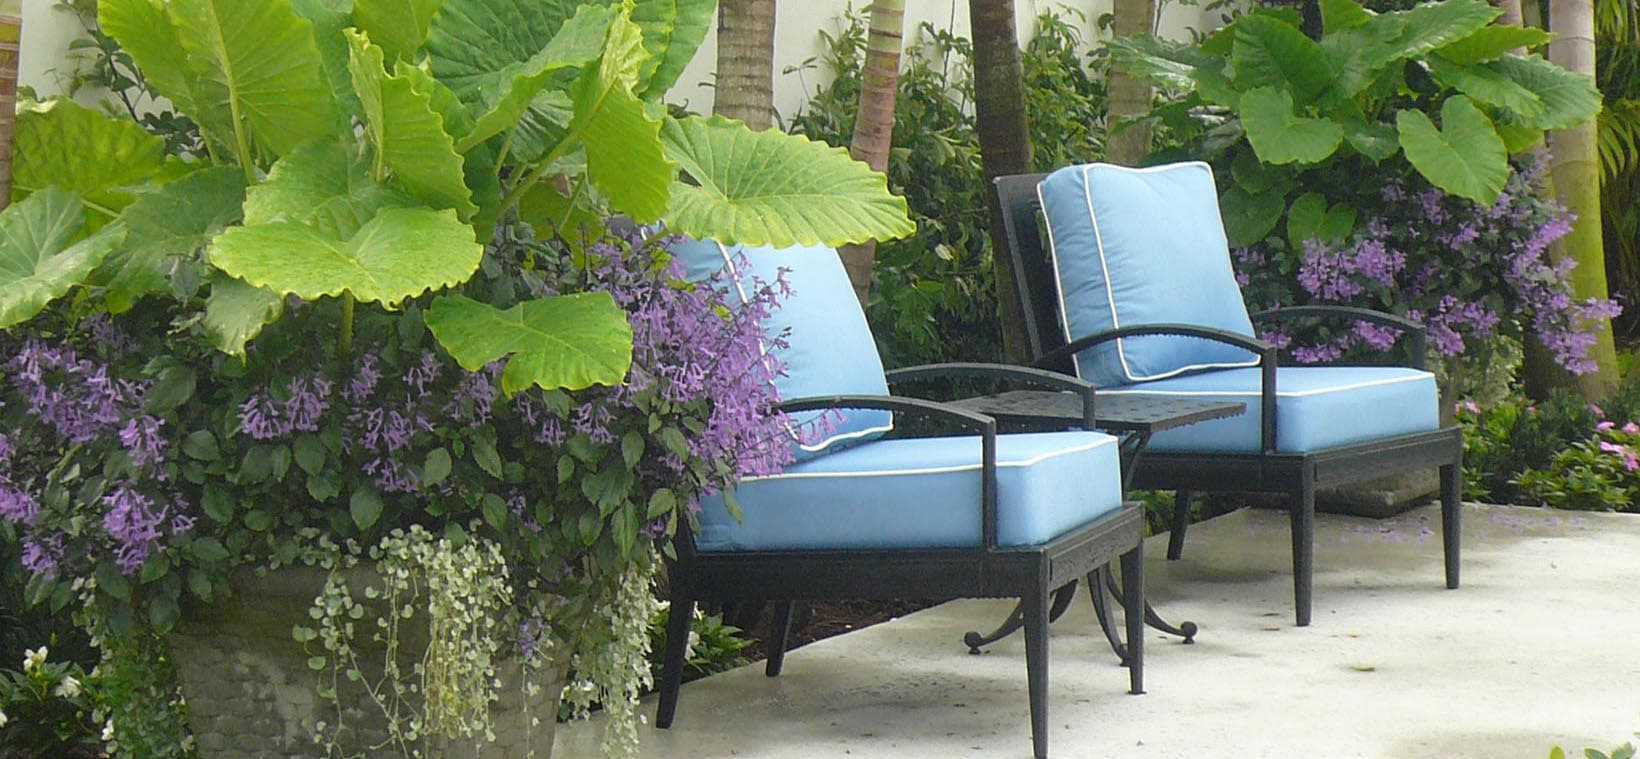 aiello-landscape_potted-plants-poolside